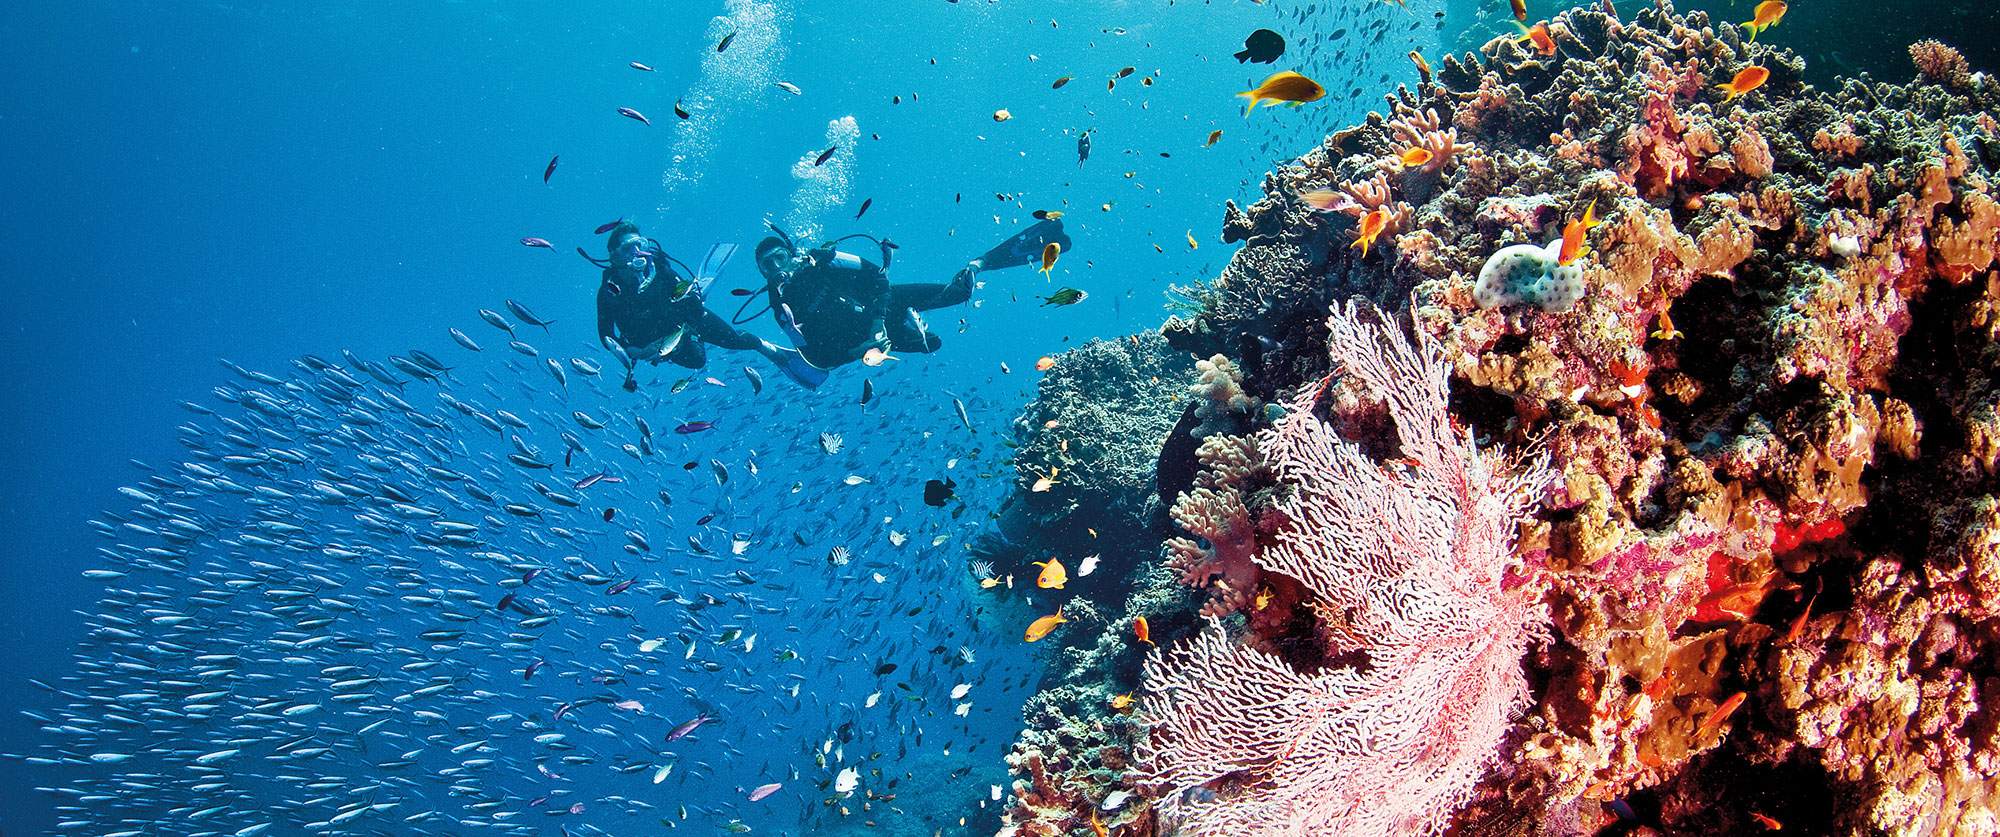 Australia Honeymoon - Snorkel and dive in the Great Barrier Reef, a scuba diver's paradise